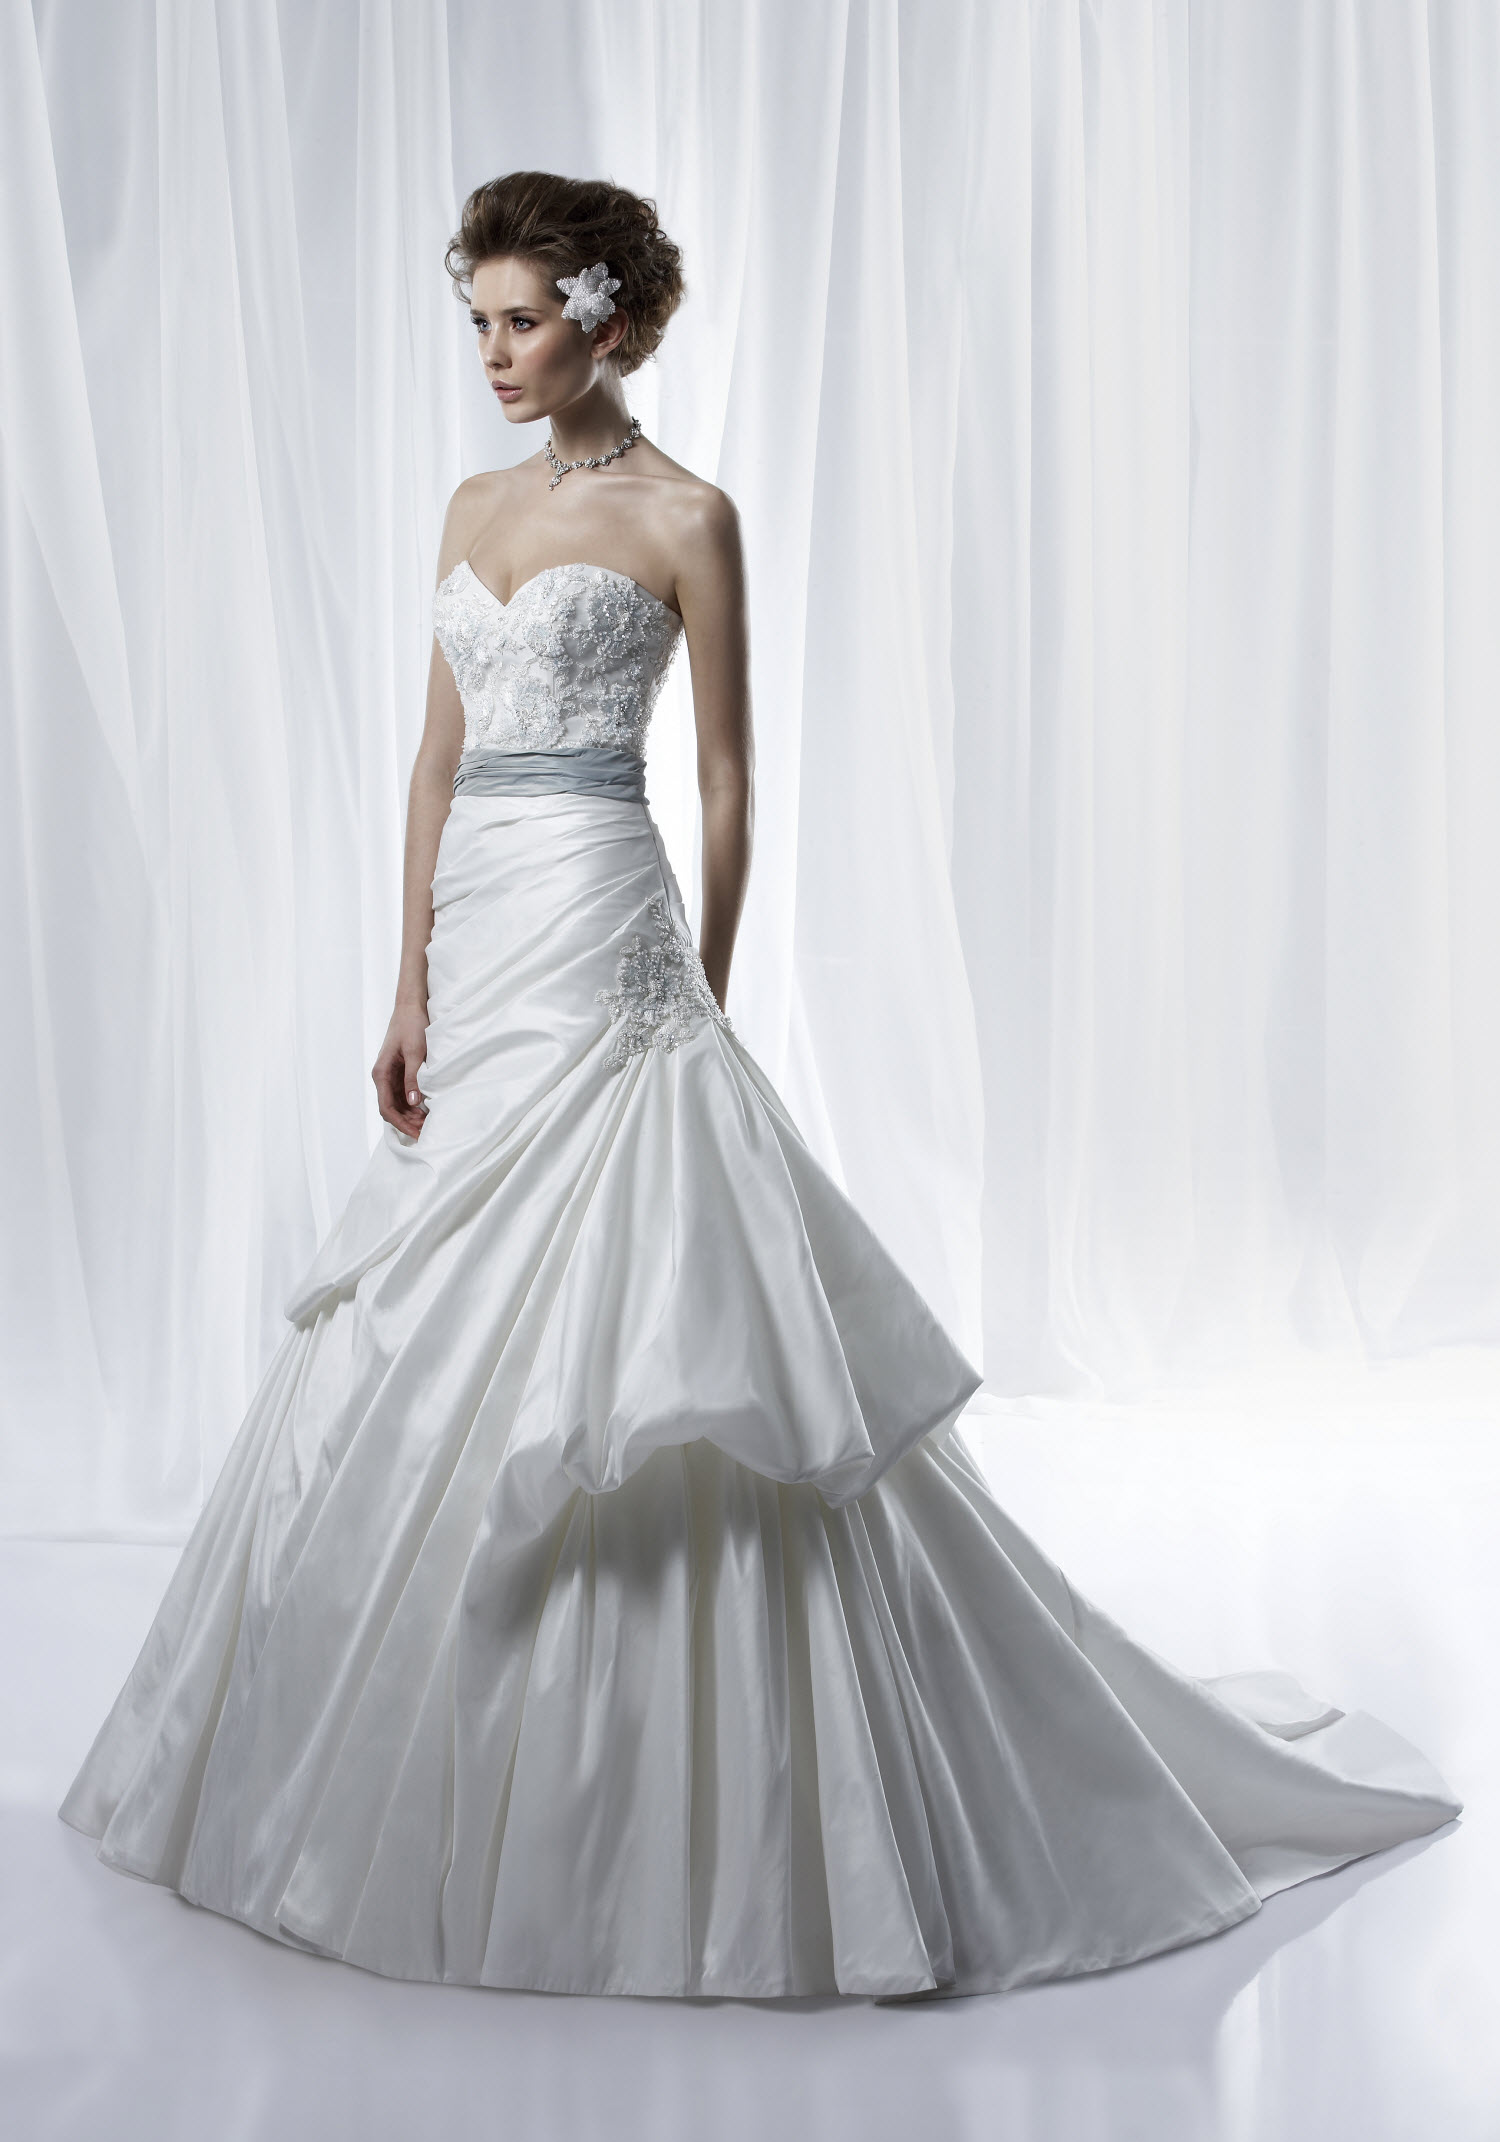 Spring-2012-wedding-dress-anjolique-corset-bodice-beading-applique-drop-waist-a-line-skirt-bridal-gown.original